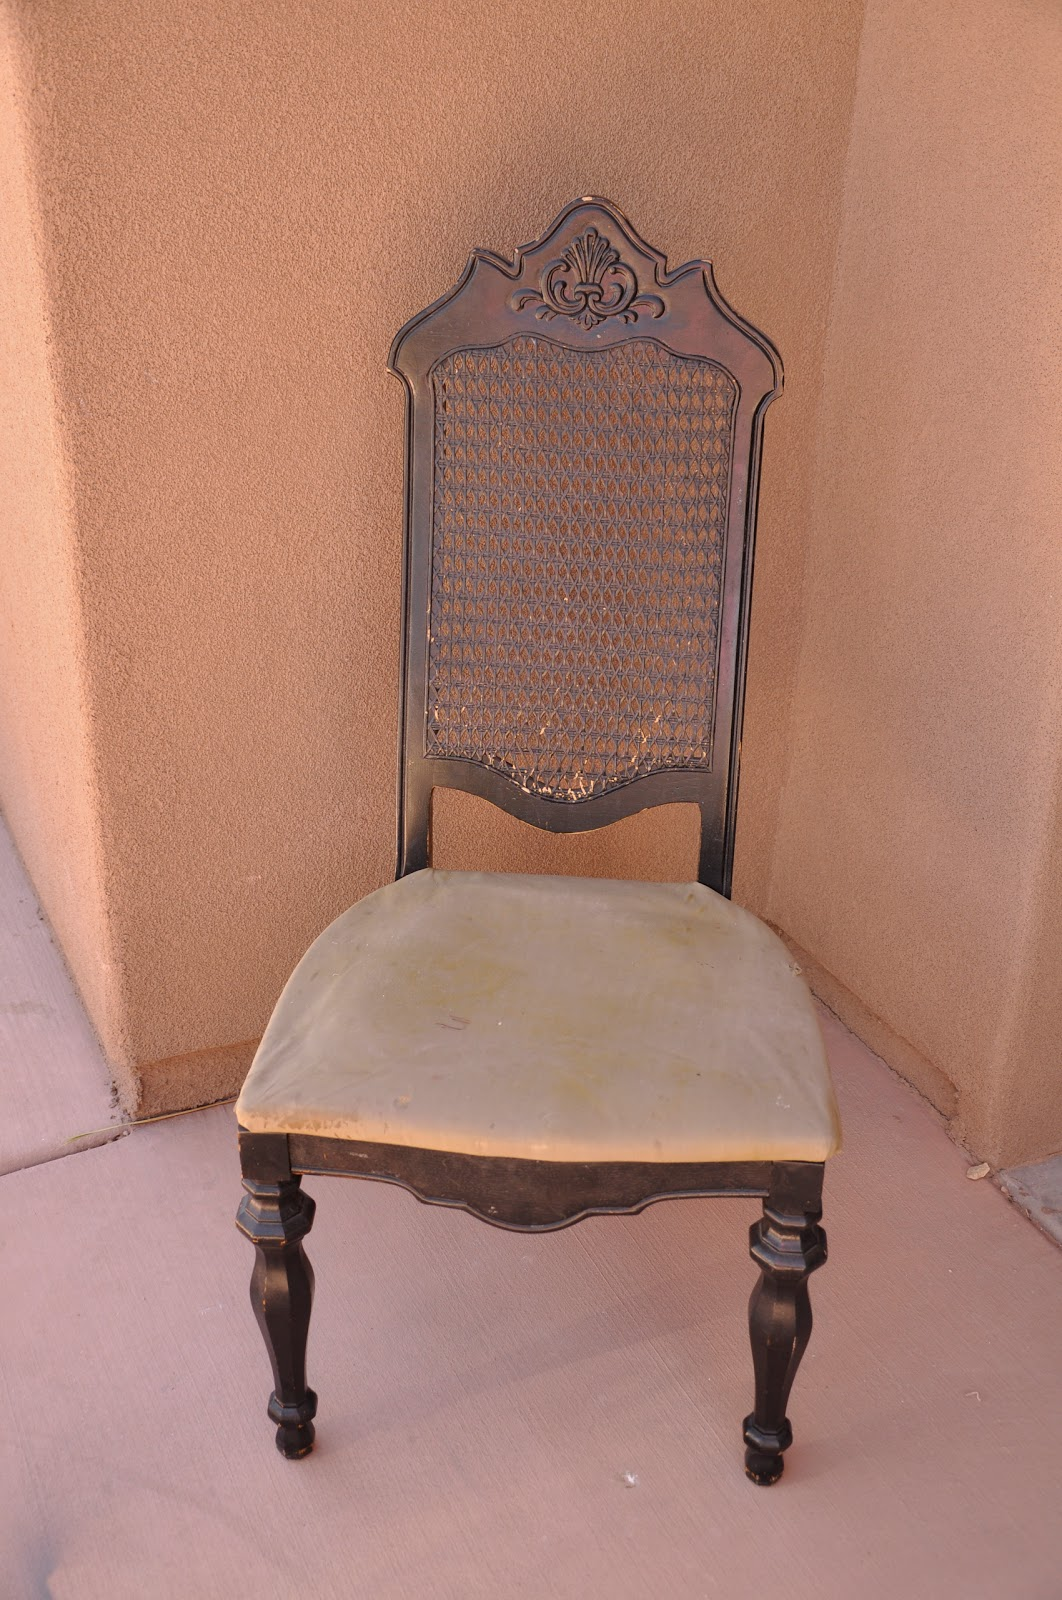 Hand Chairs Wedding Chair Decorations Diy Second Furniture Can Be Great For Re Purposing